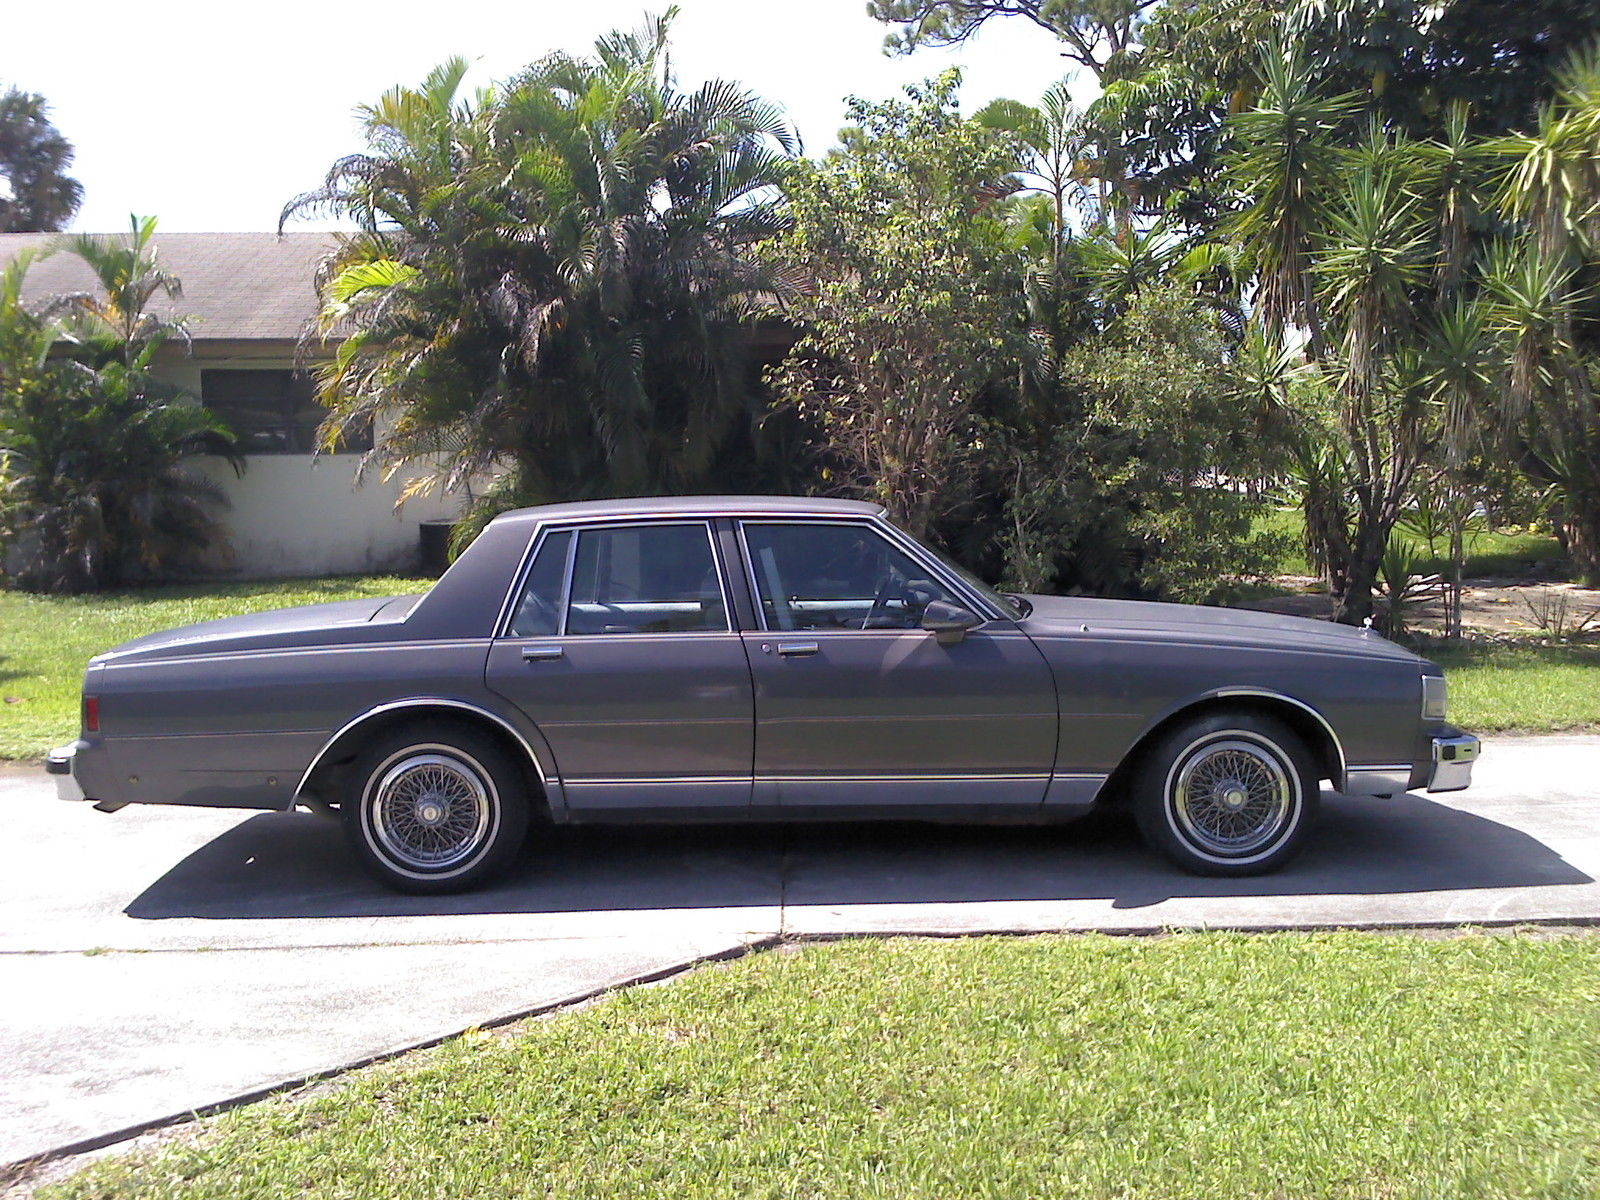 1990 chevy caprice classic last year of this body style the box classic chevrolet caprice. Black Bedroom Furniture Sets. Home Design Ideas